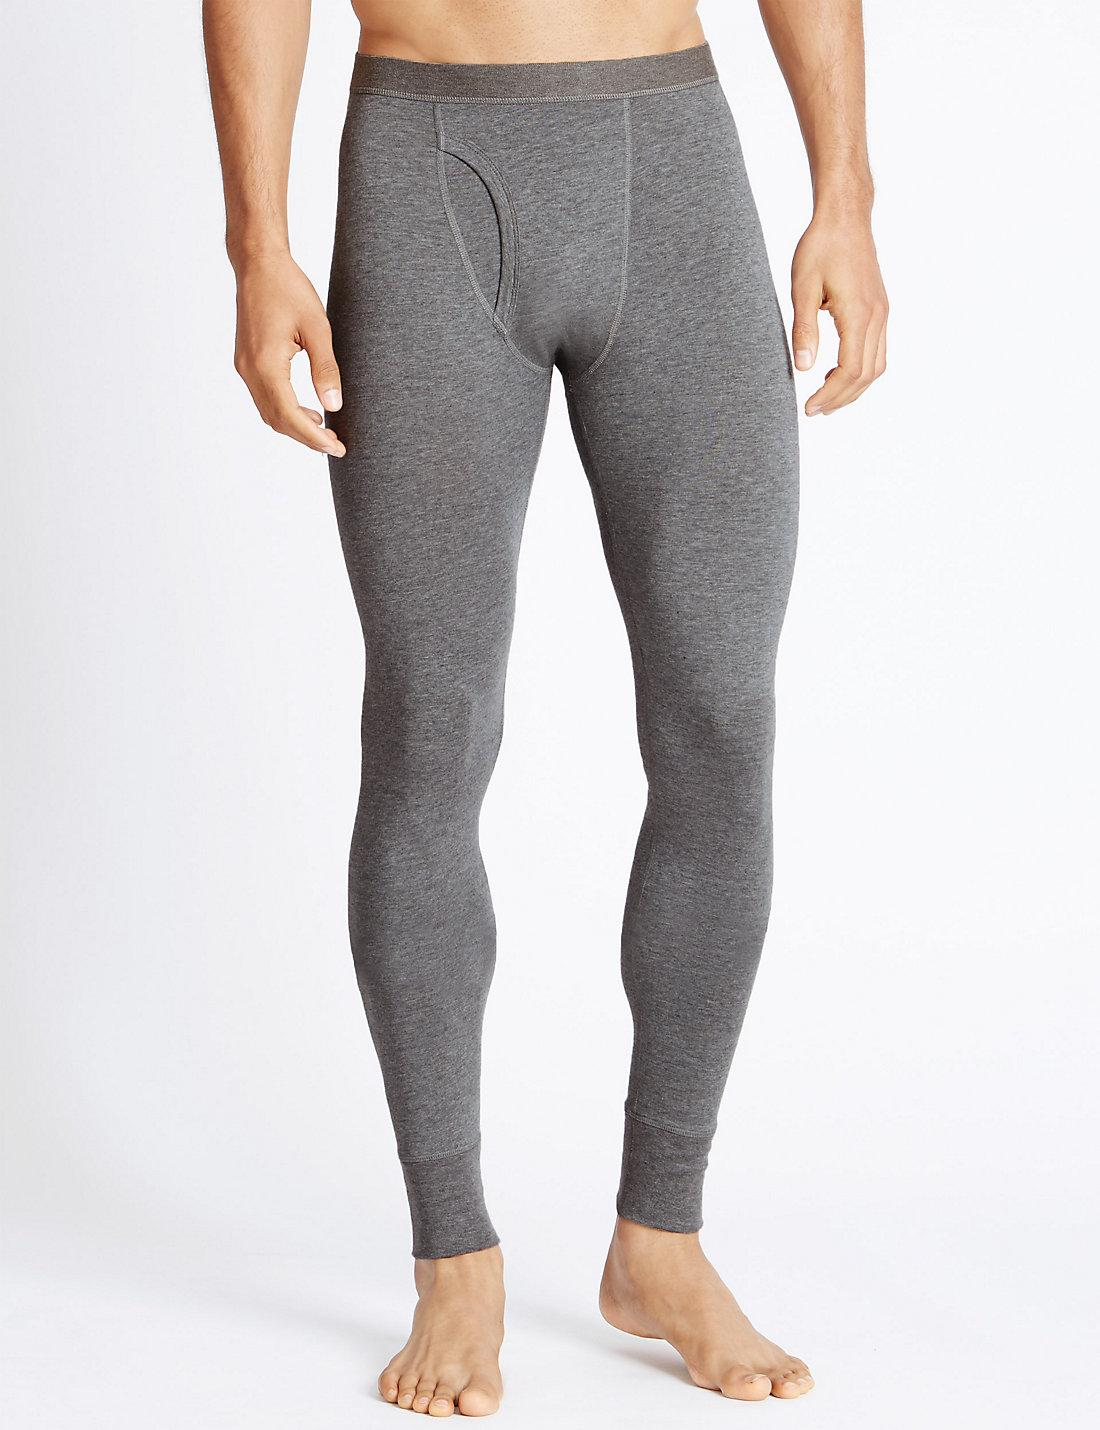 f62f32f97 Lyst - Marks & Spencer 2 Pack Thermal Heatgentm Long Johns in Gray ...